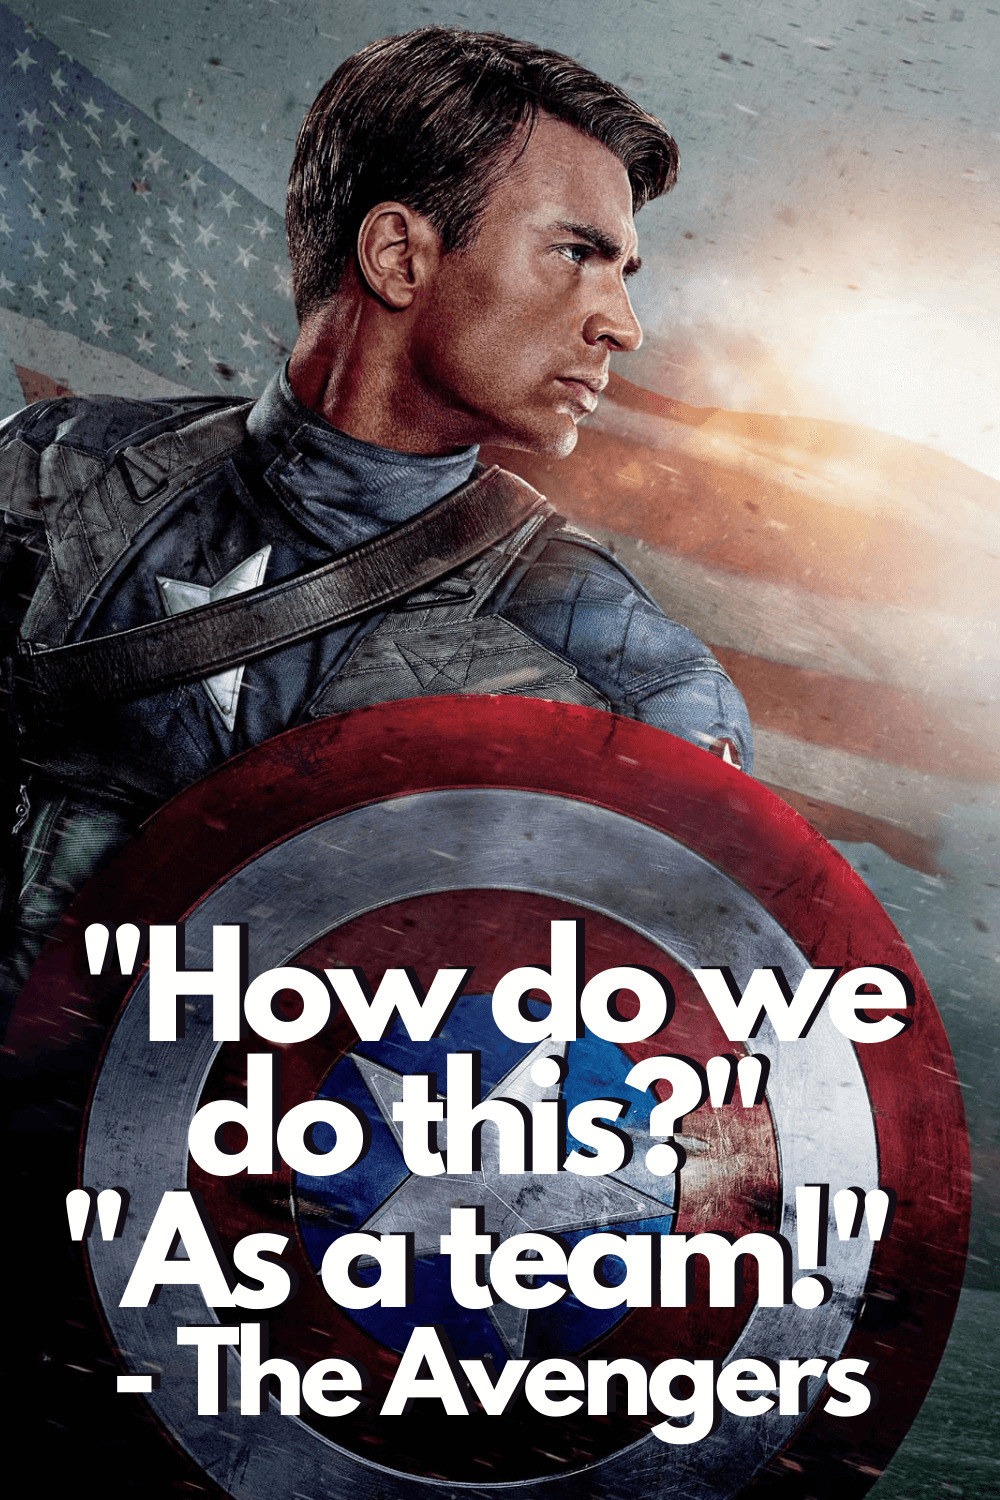 As a team Captain America quotes